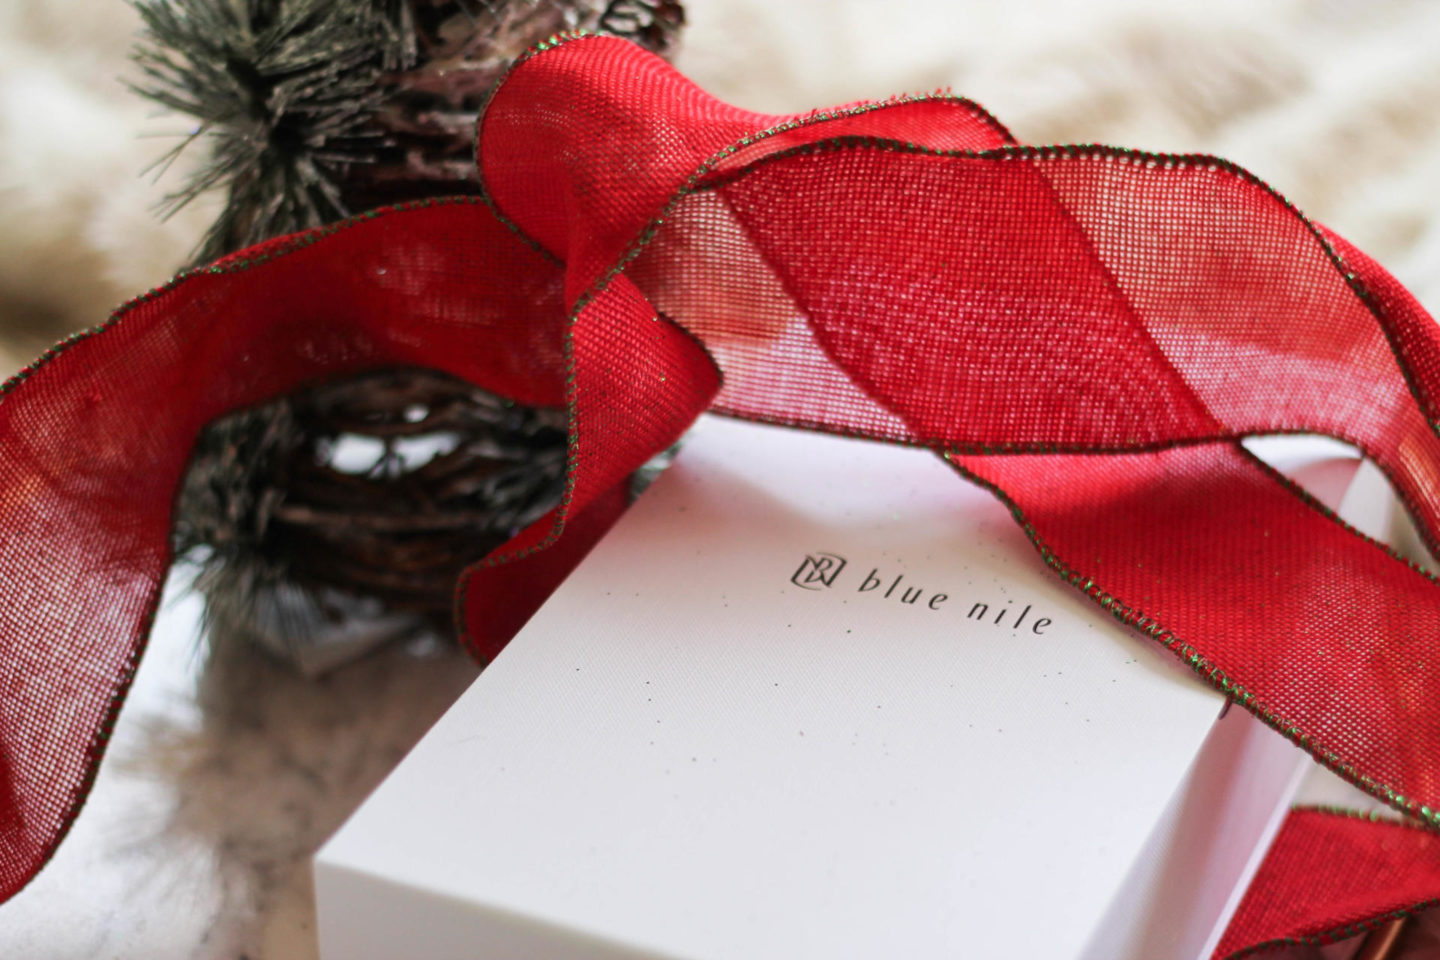 Blue Nile Jewelry - Give Blue Nile Jewelry This Christmas by New York fashion blogger Style Waltz